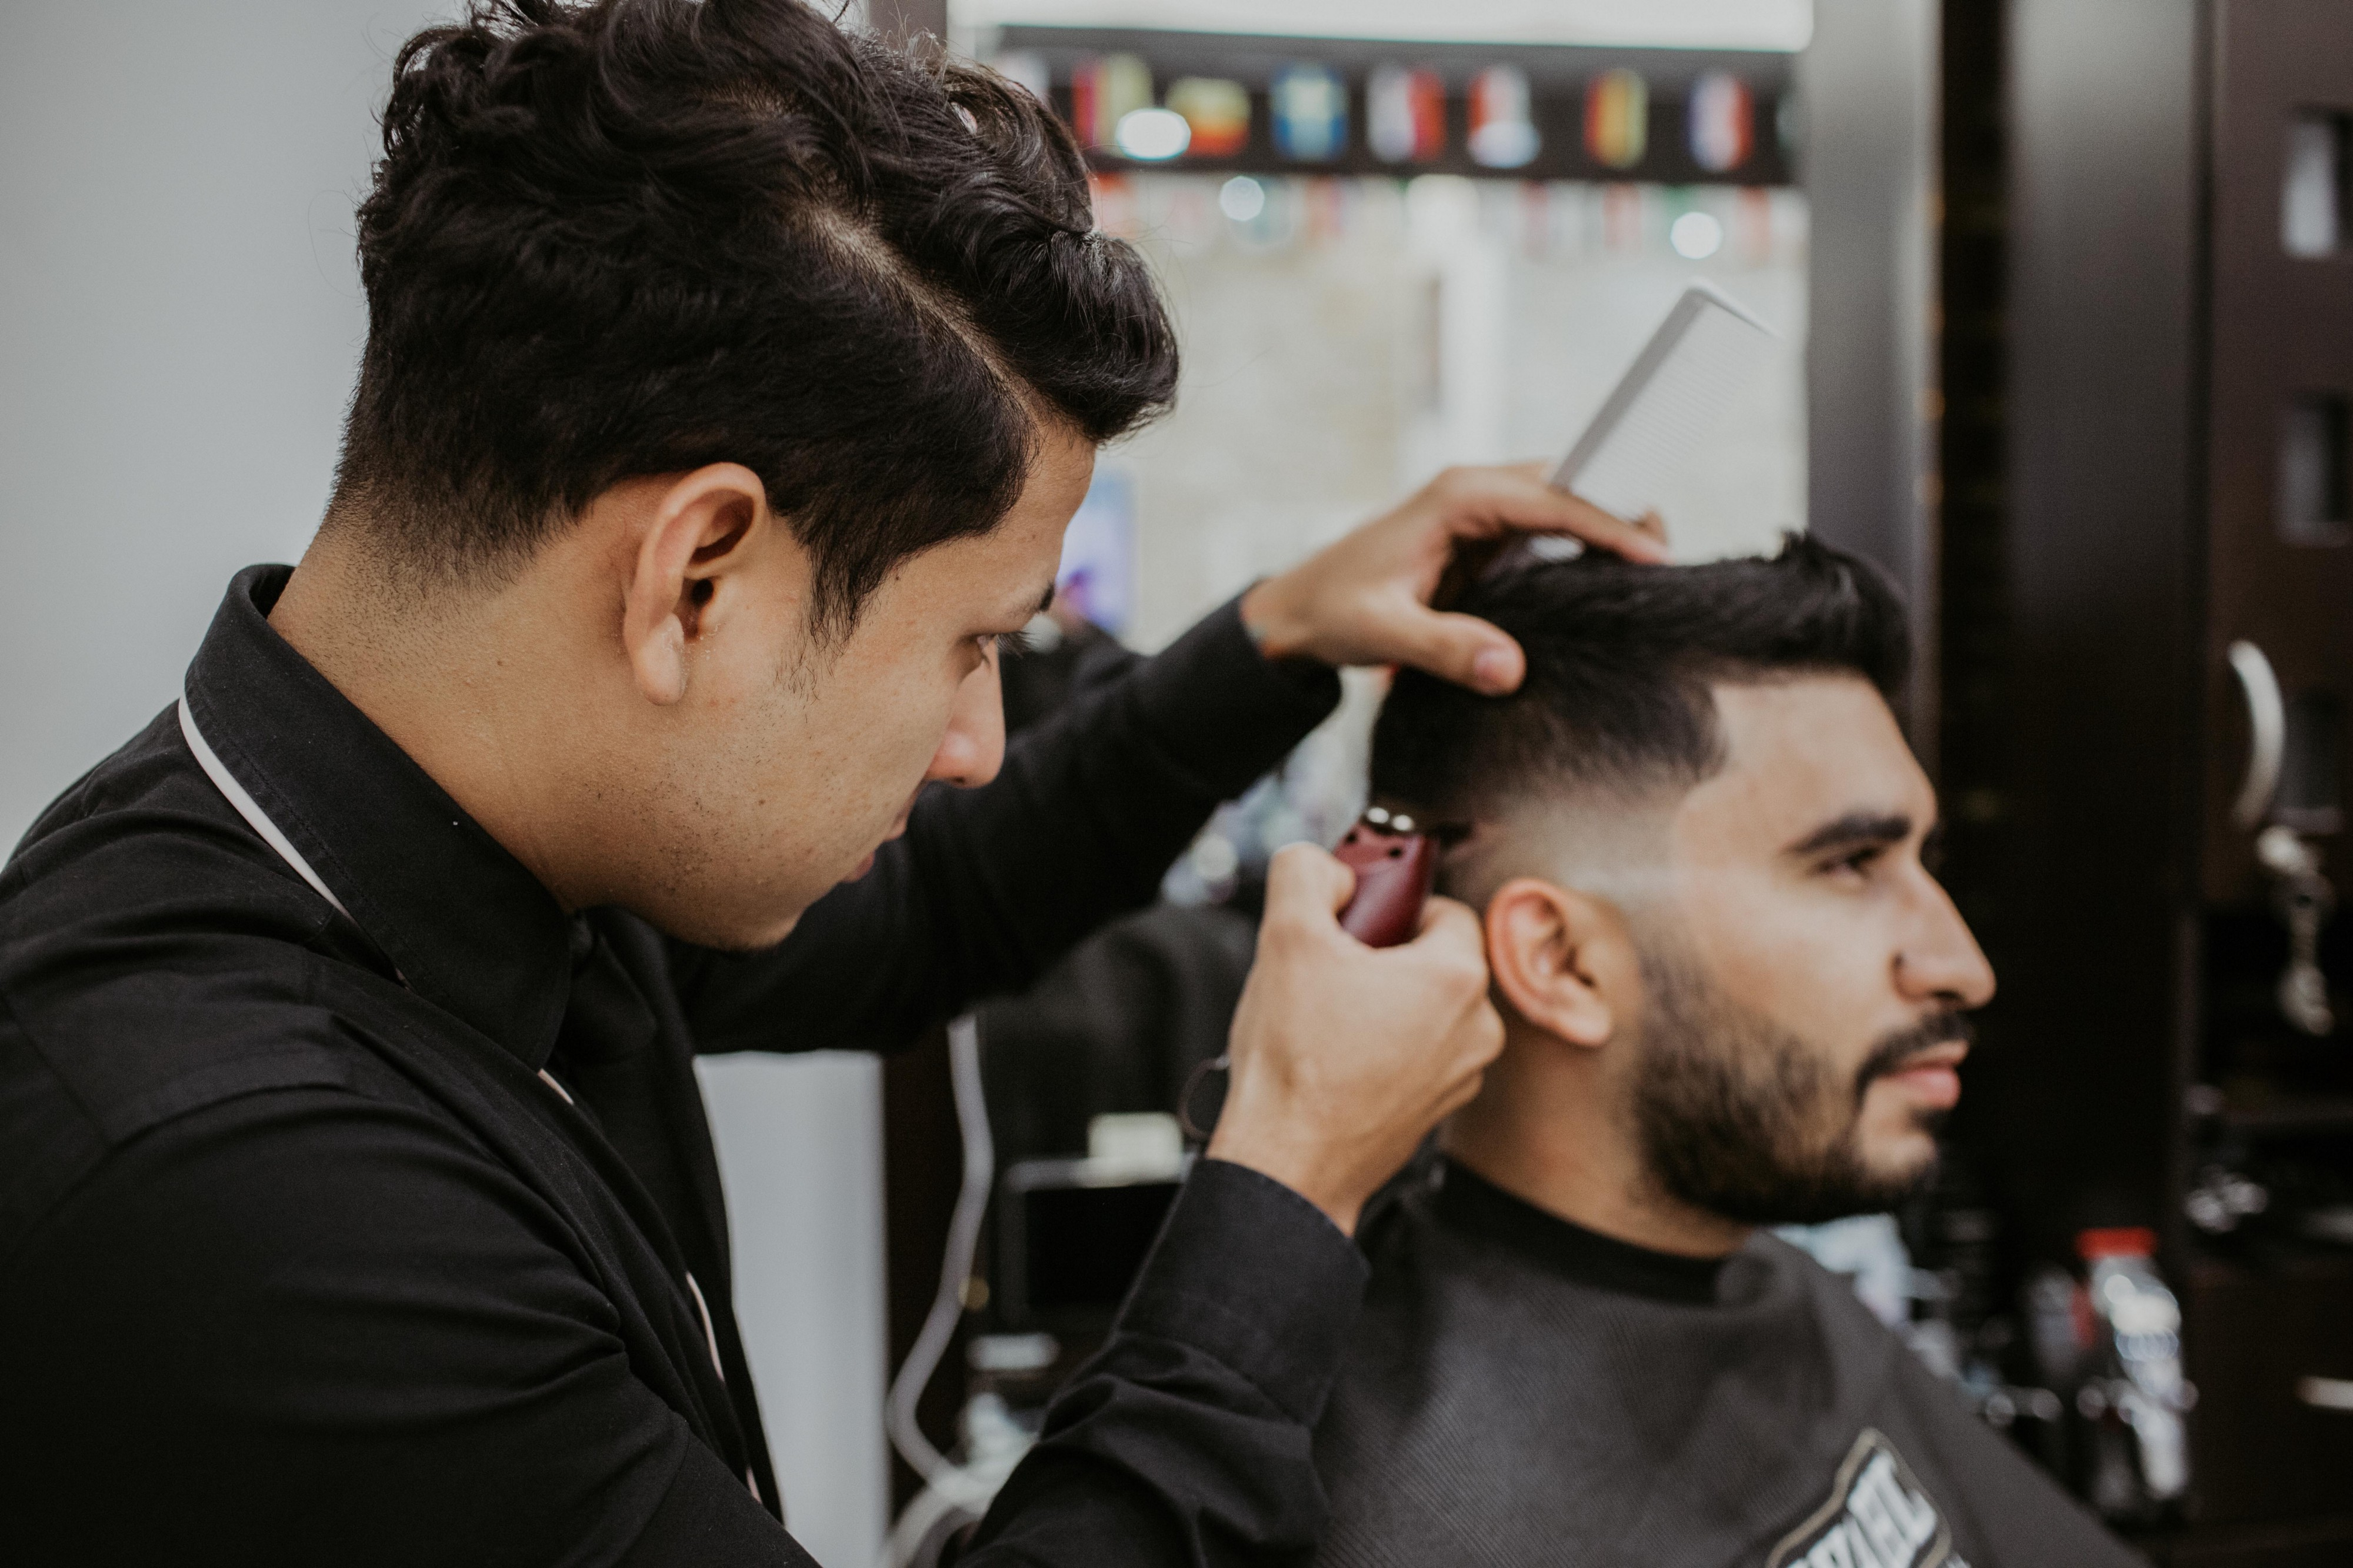 Learning To Cut My Own Hair Saved Me Thousands  by Marx D.  The